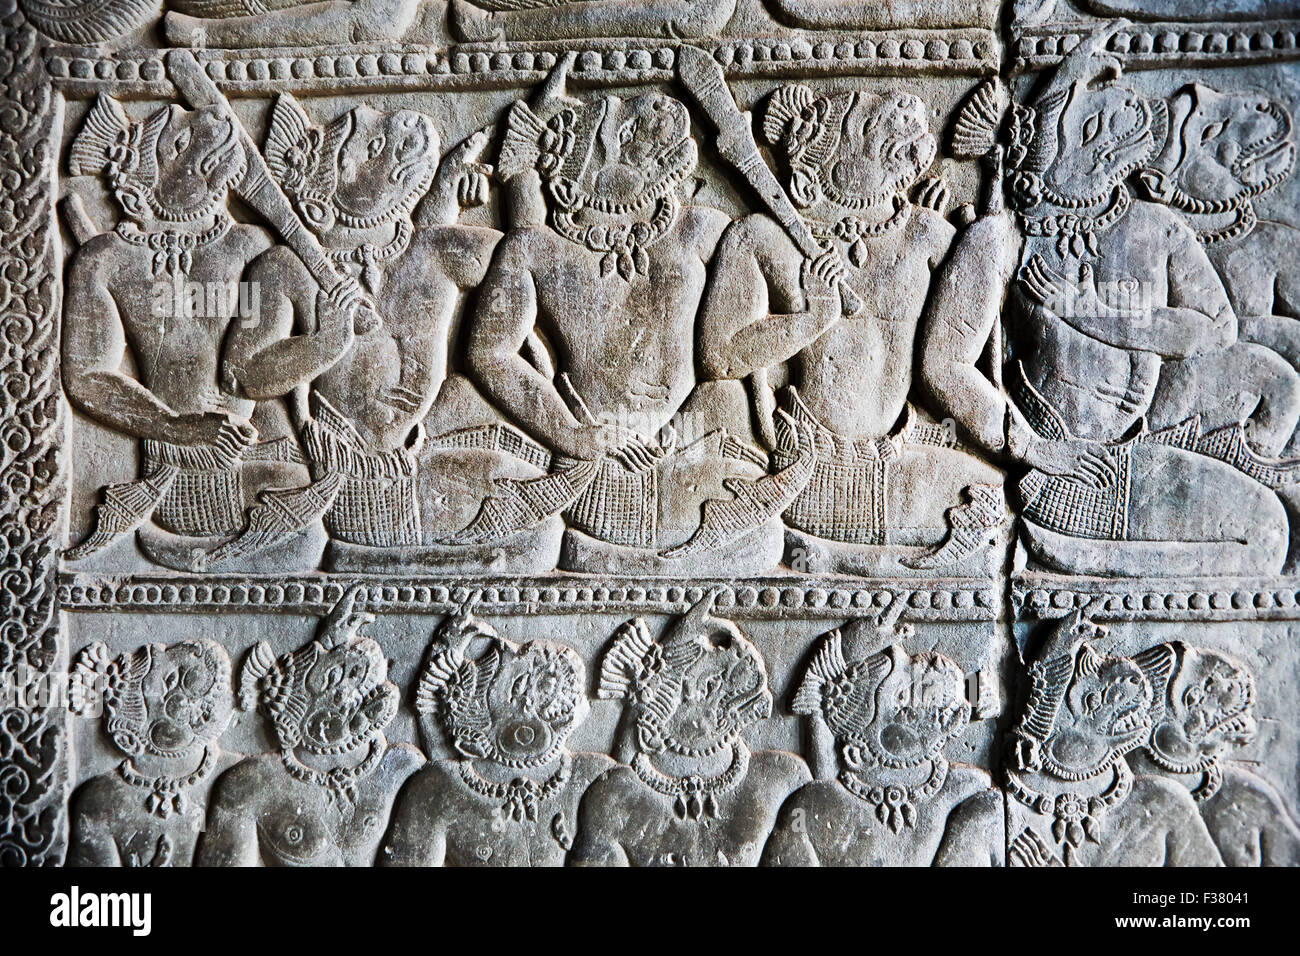 Fragment of bas-relief at Angkor Wat temple complex. Angkor Archaeological Park, Siem Reap Province, Cambodia. - Stock Image